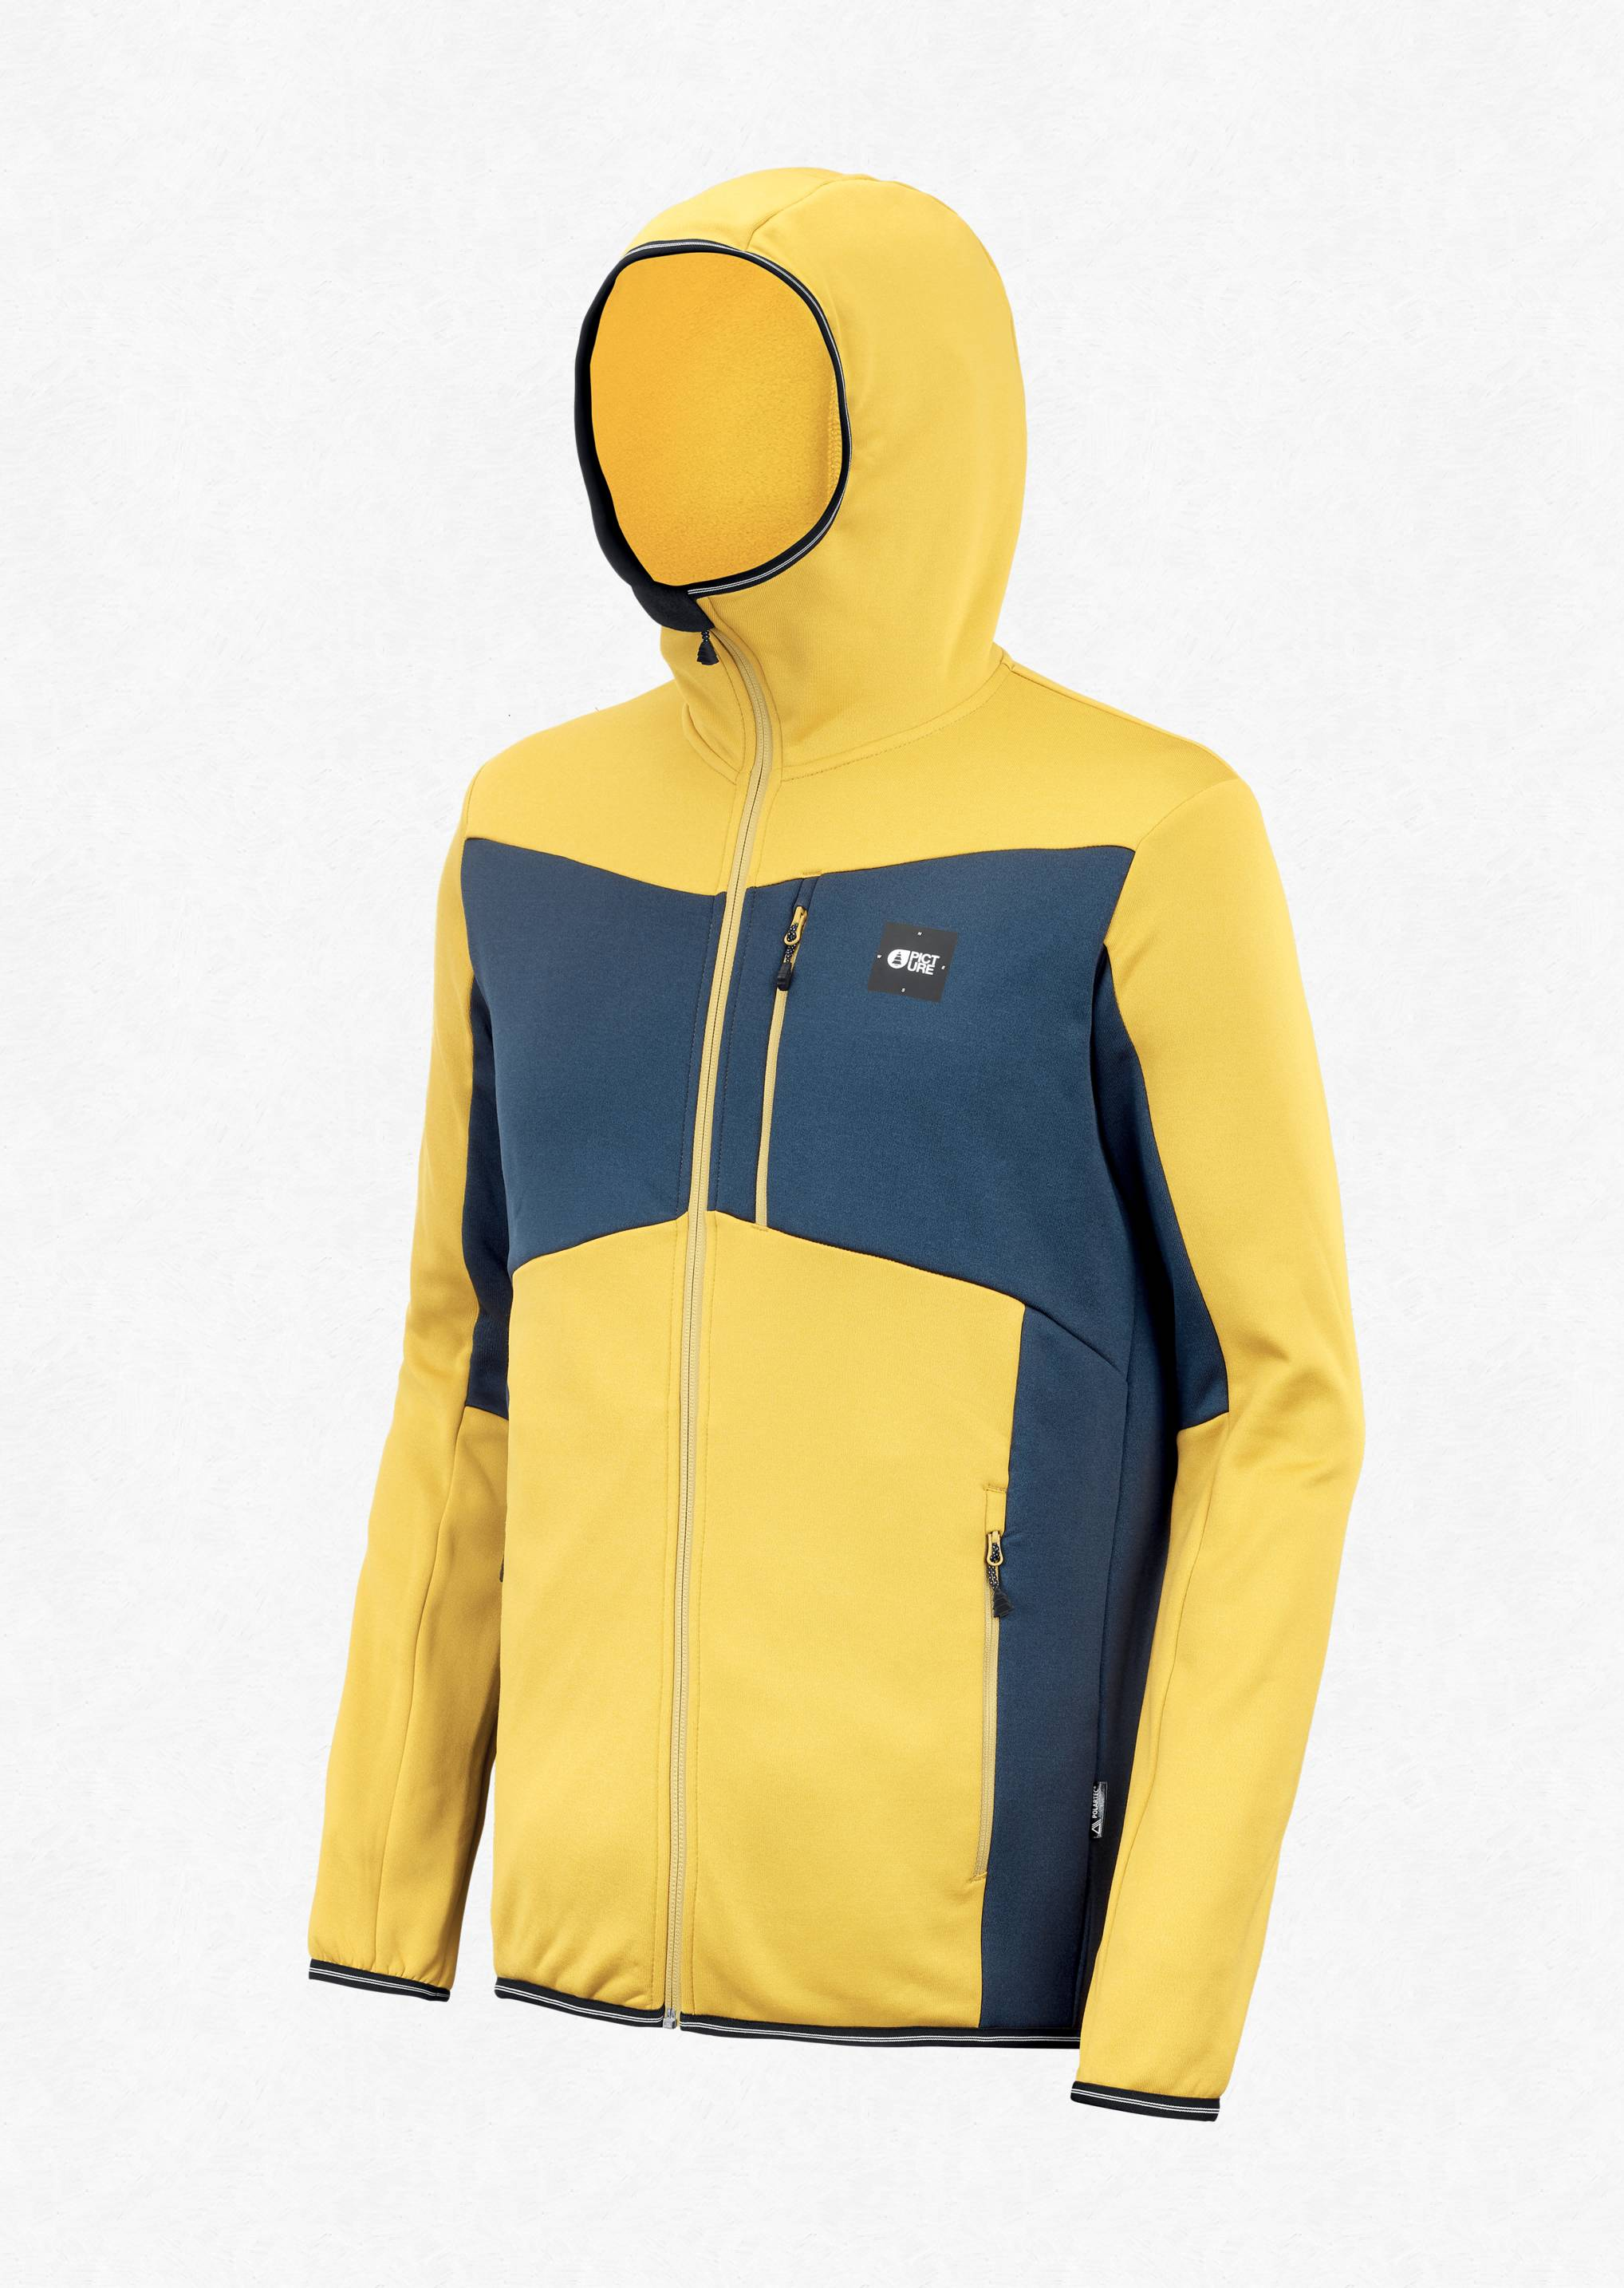 Picture M Astral Jacket 2021